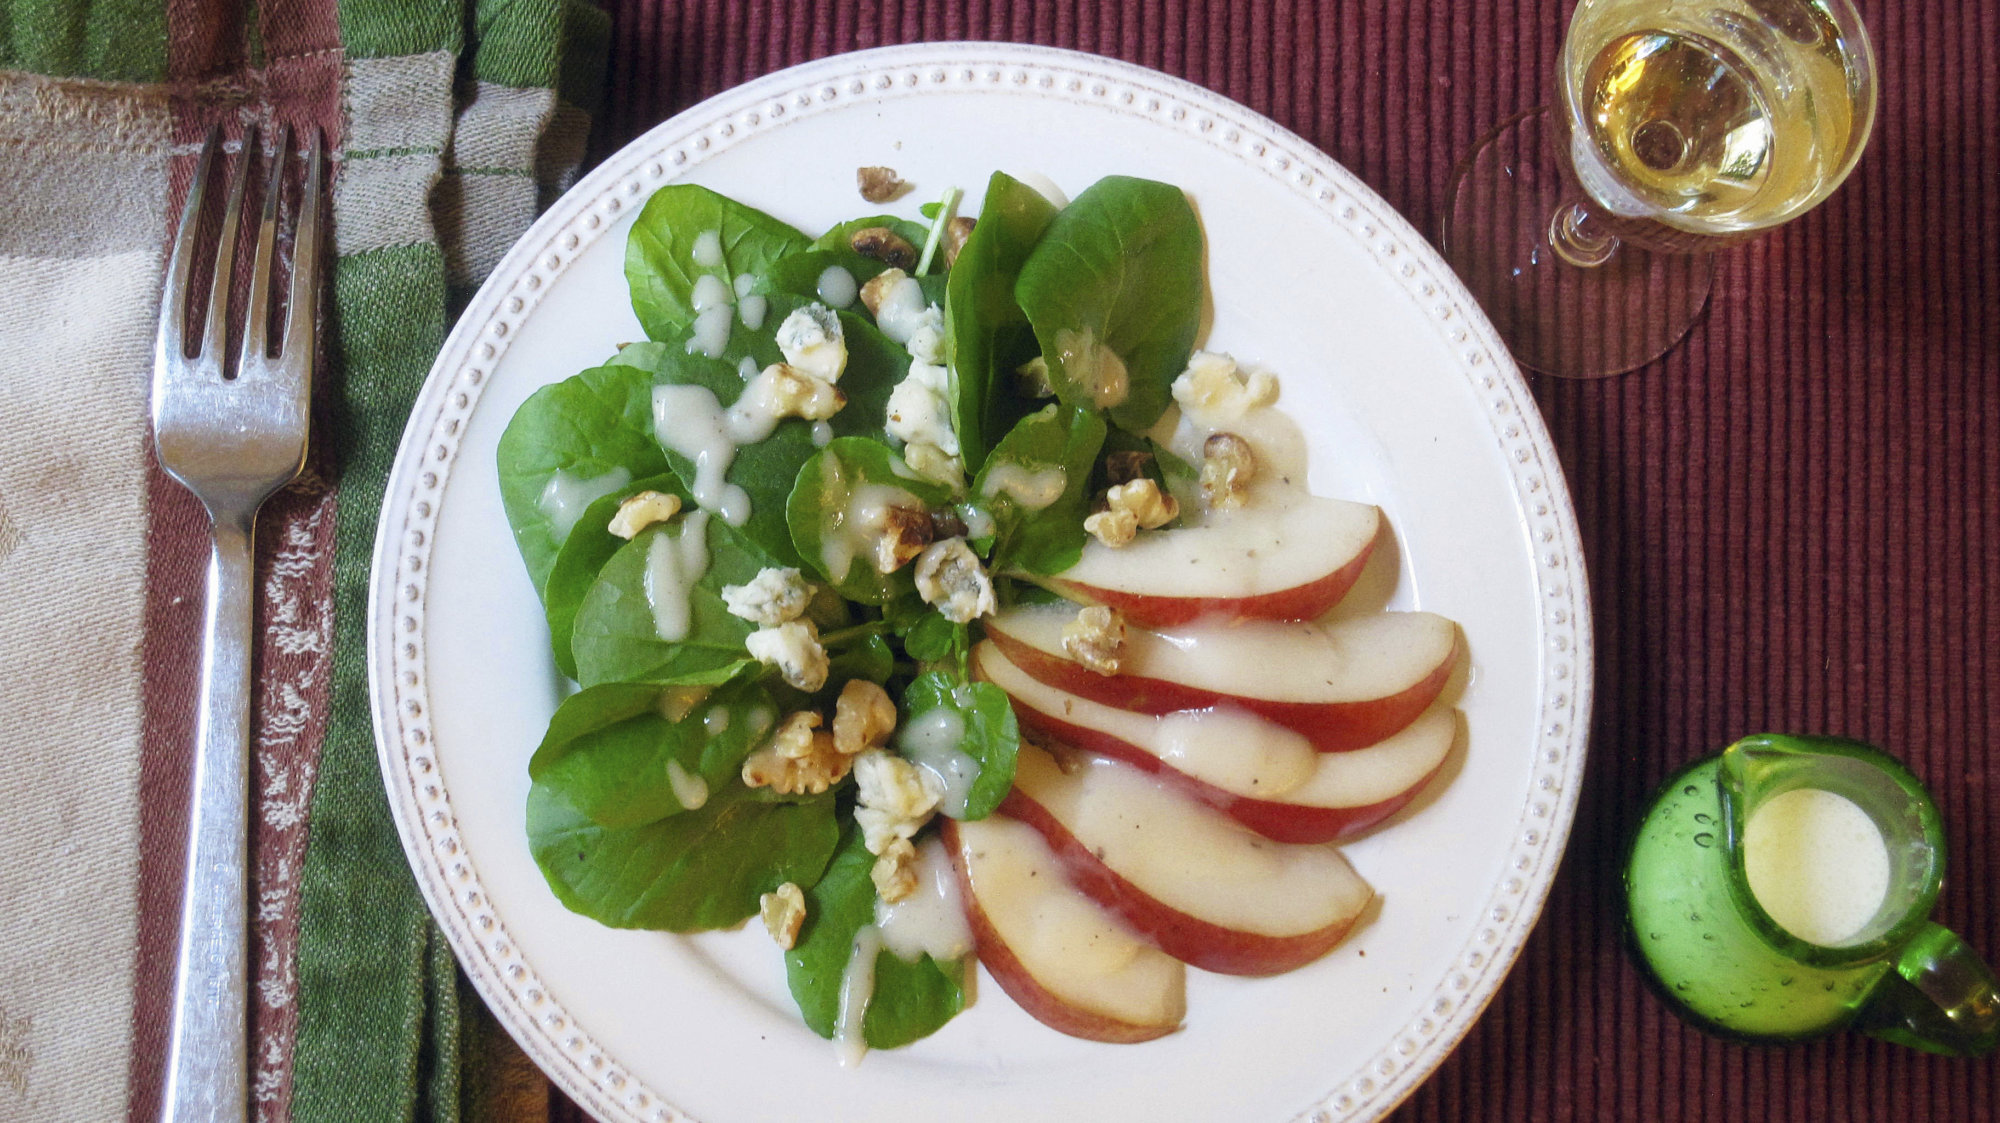 This Oct. 31, 2017 photo shows a green salad with pear dressing, Gorgonzola cheese and toasted walnuts in New York. This dish is from a recipe by Sara Moulton. (Sara Moulton via AP)